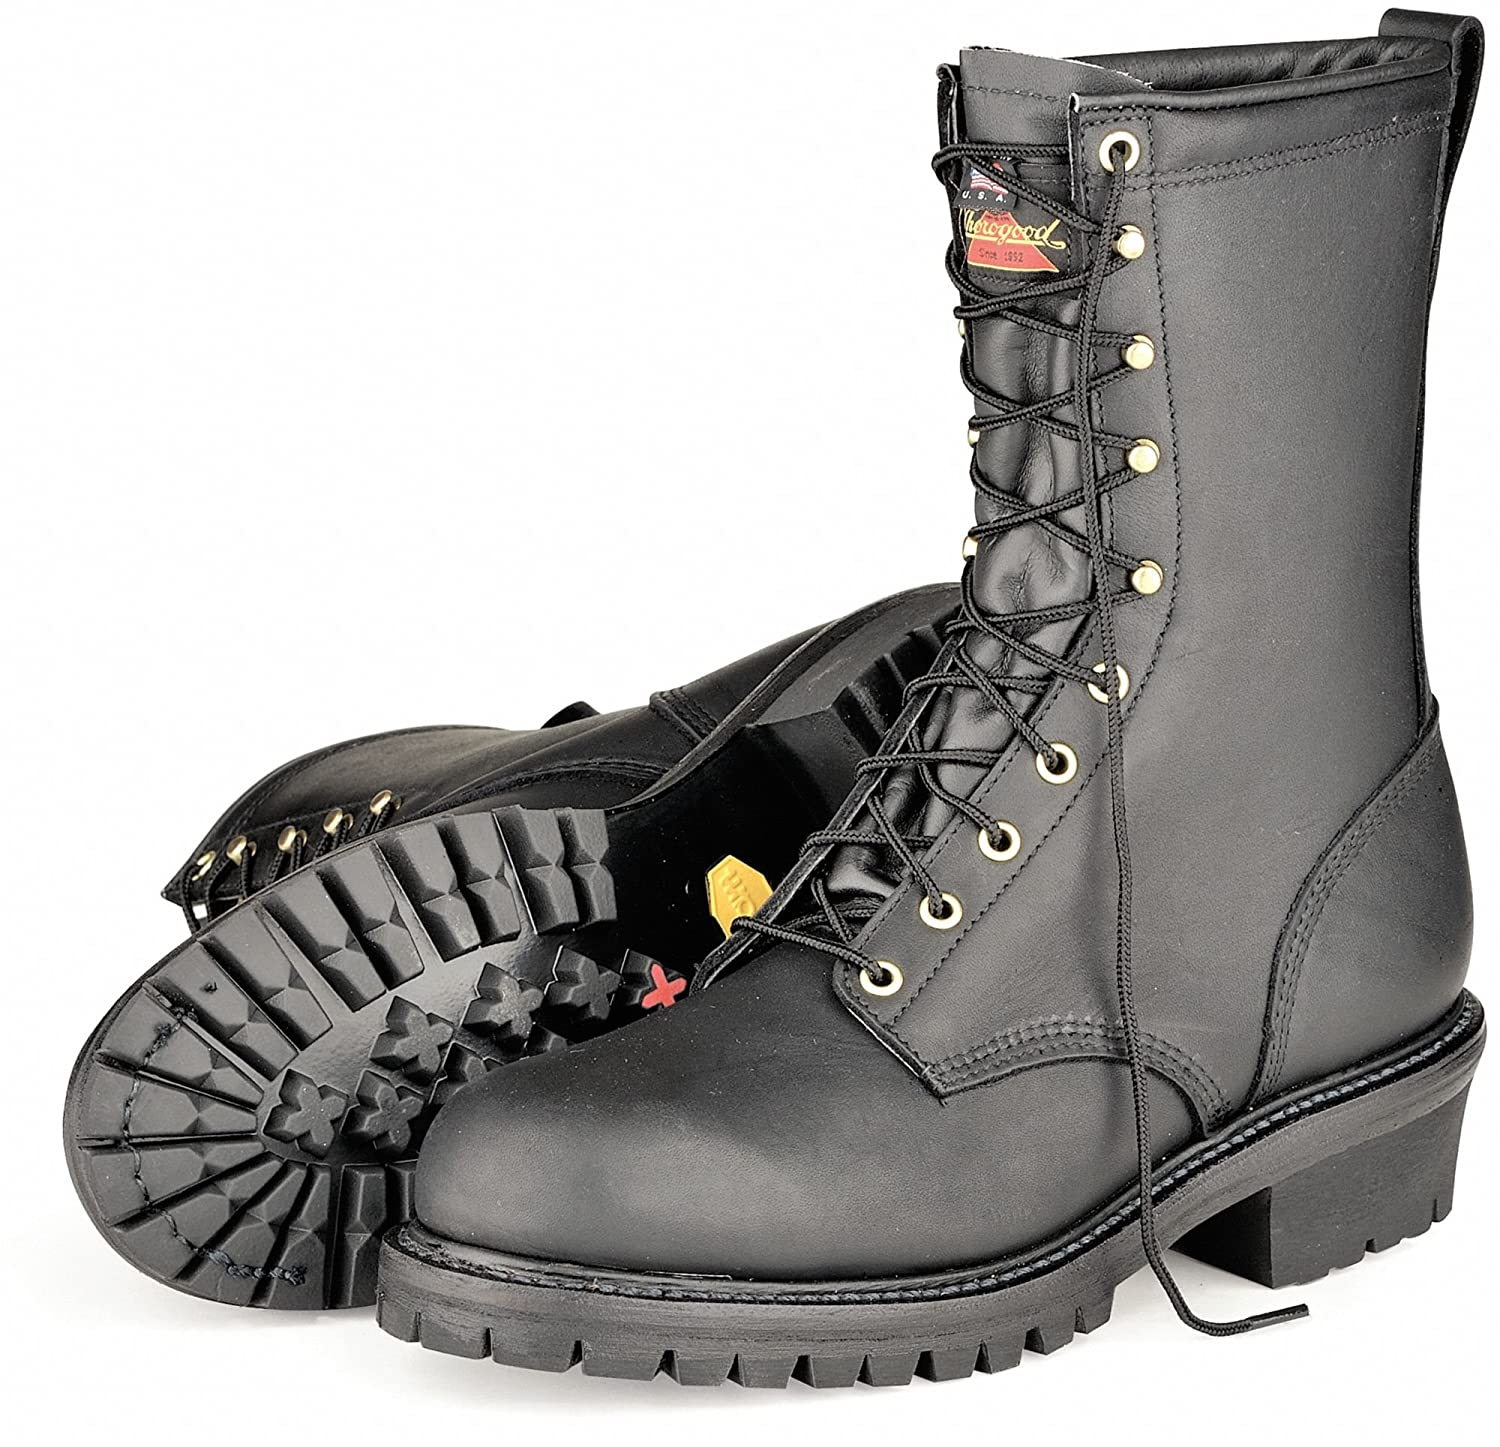 90113f5cda5 Amazon.com: Wildland Fire Boots, Mens, 11-1/2M, PR: Industrial ...